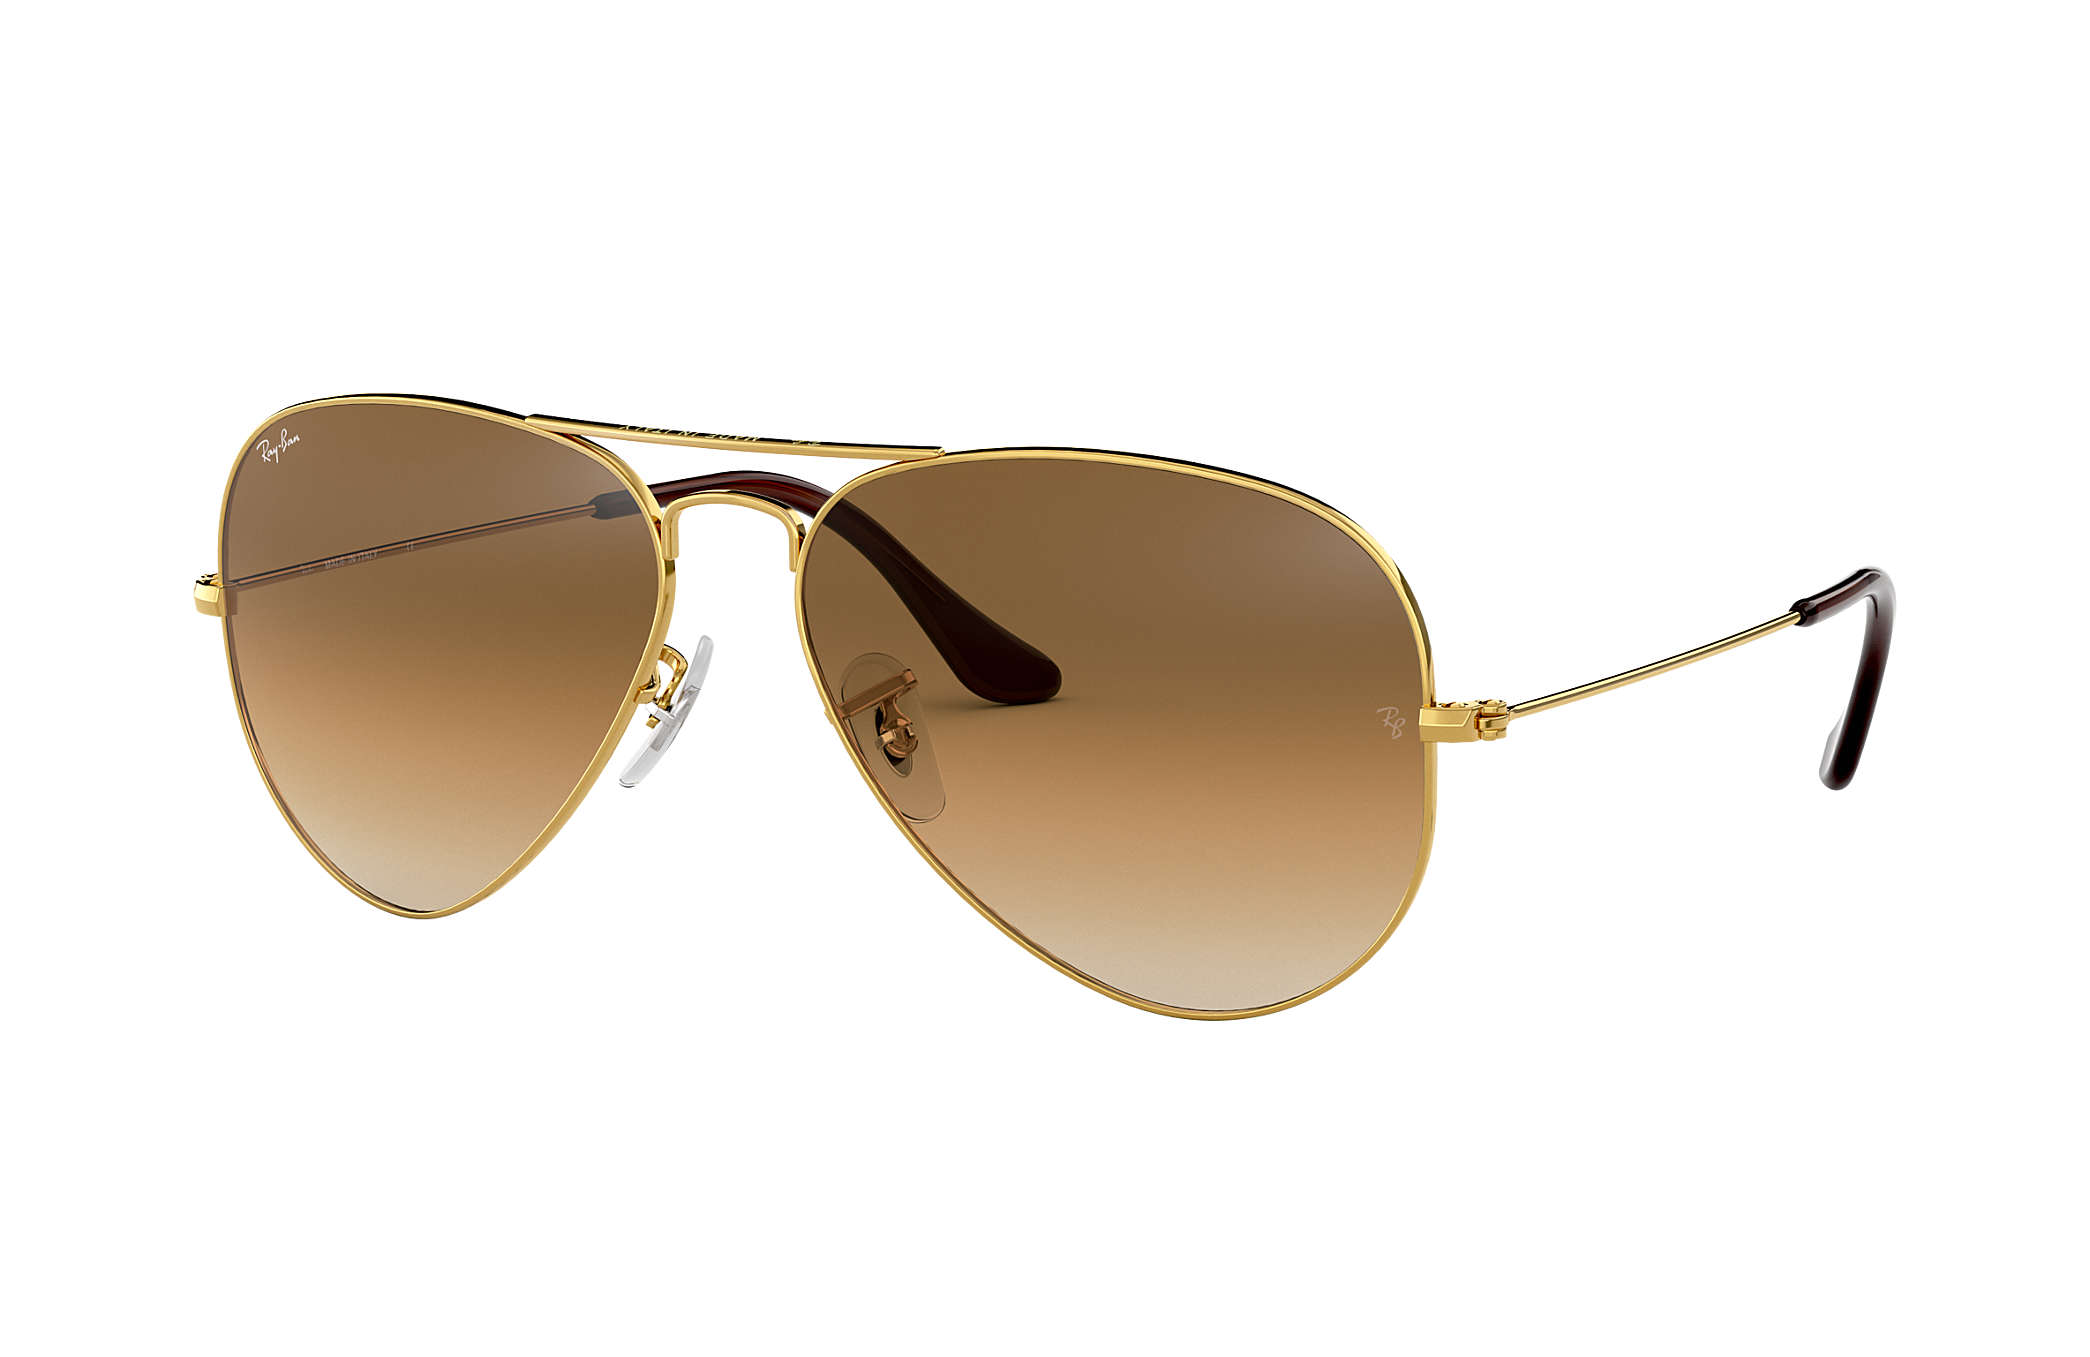 3cc1a328b7f0 Ray-Ban Aviator Gradient RB3025 Gold - Metal - Light Brown Lenses ...